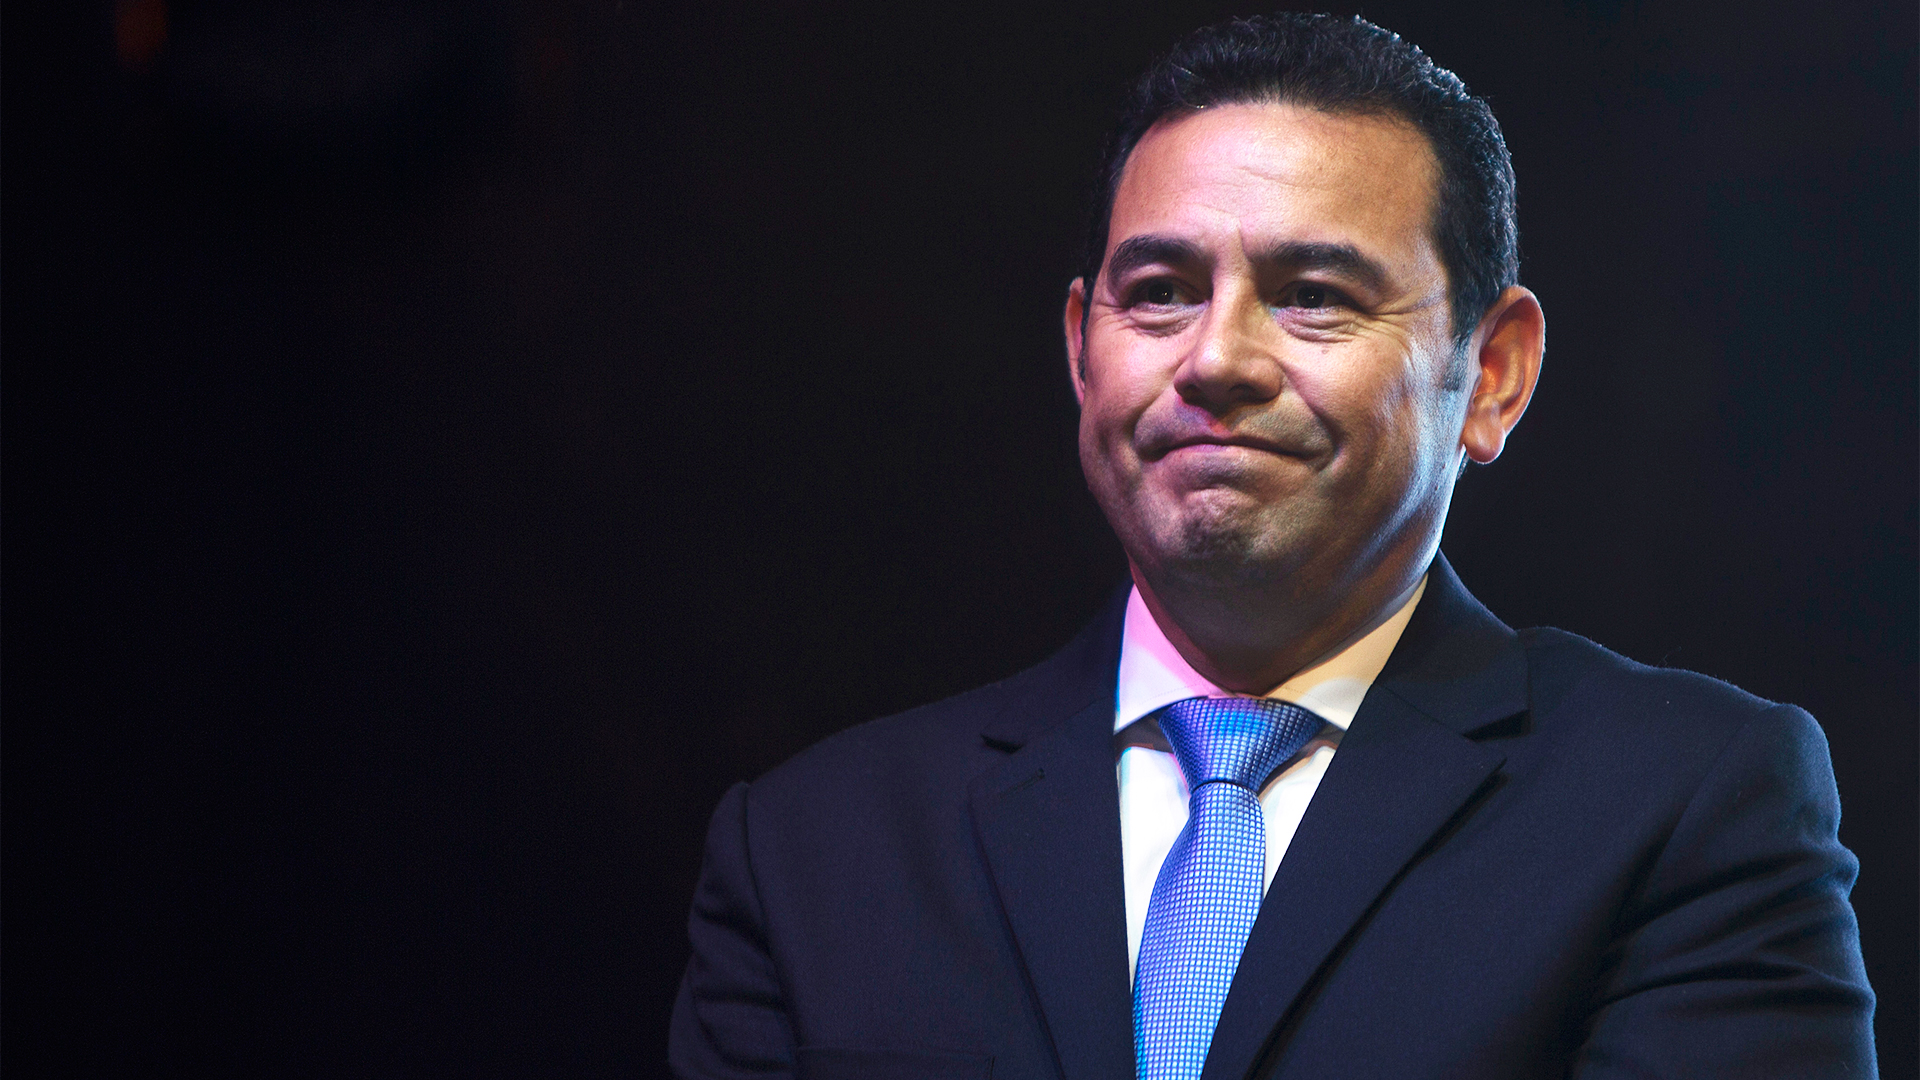 http://ultimahora.sv/wp-content/uploads/2017/01/jimmy-morales.jpg